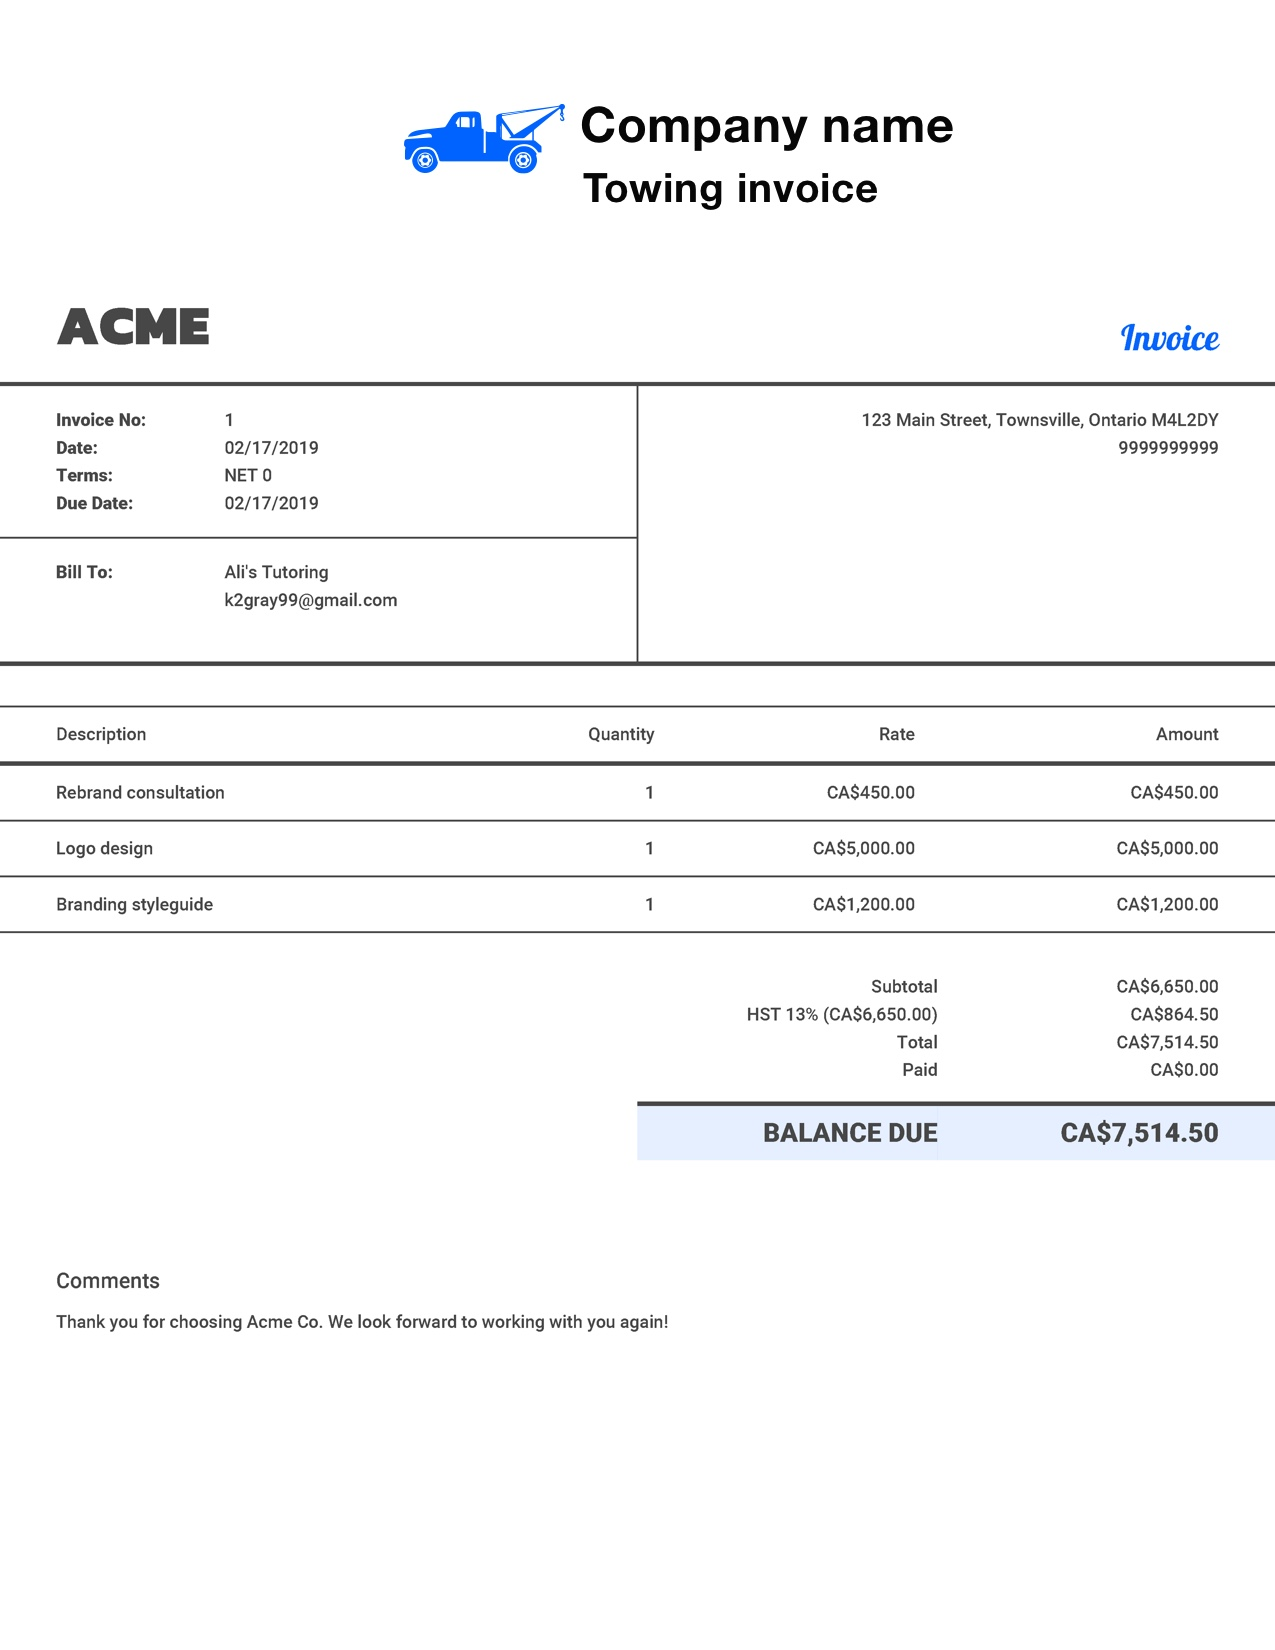 Free Towing Invoice Template Customize And Send In 90 Seconds